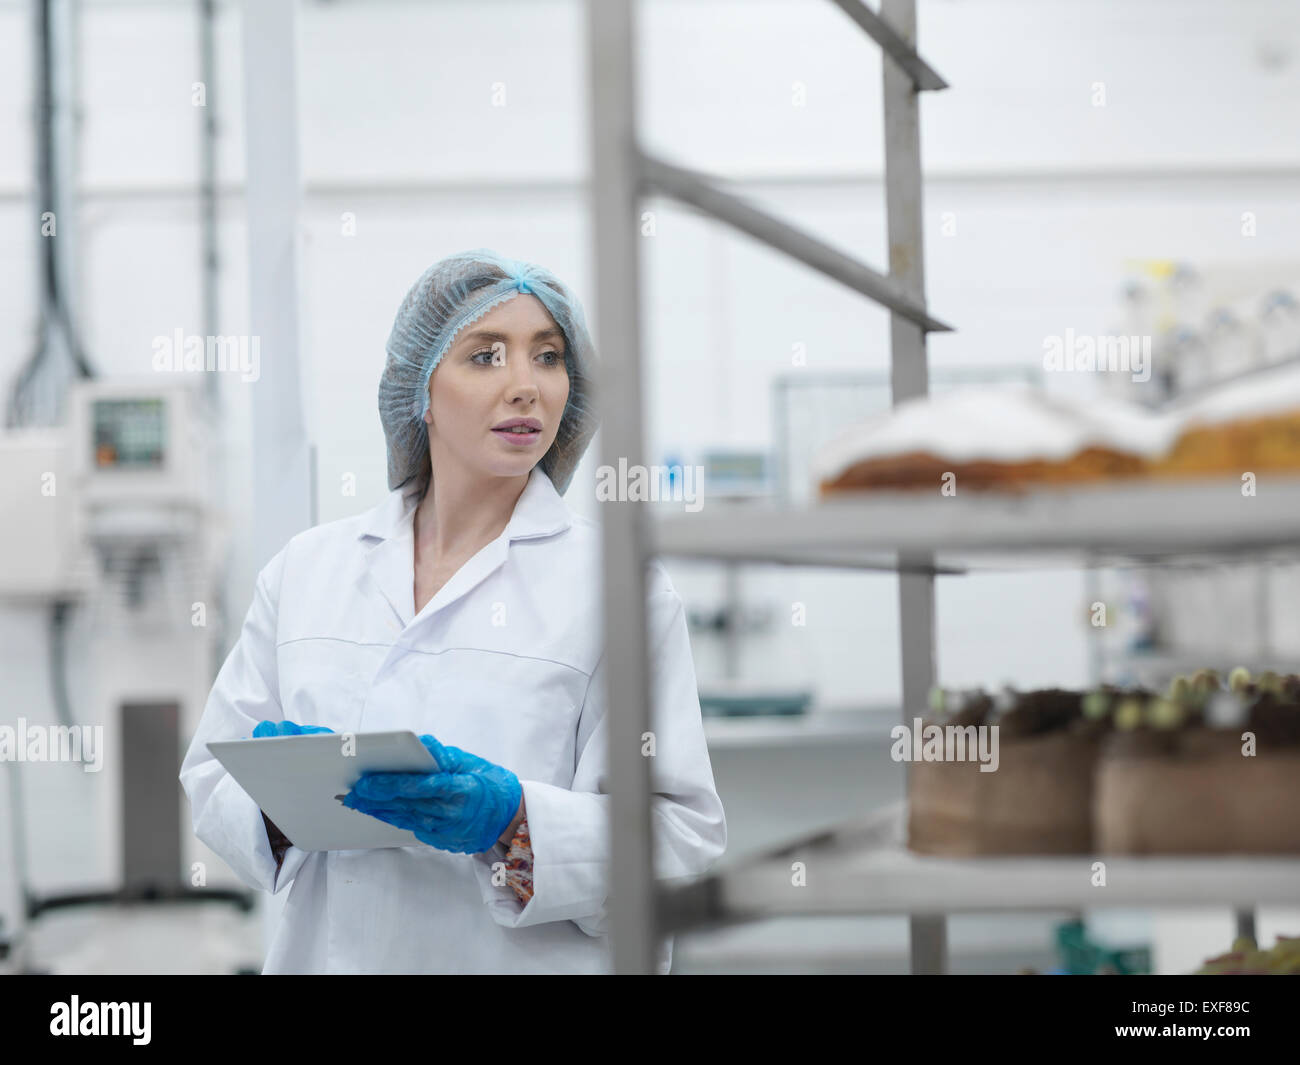 Female baker checking stock on digital tablet in cake factory - Stock Image